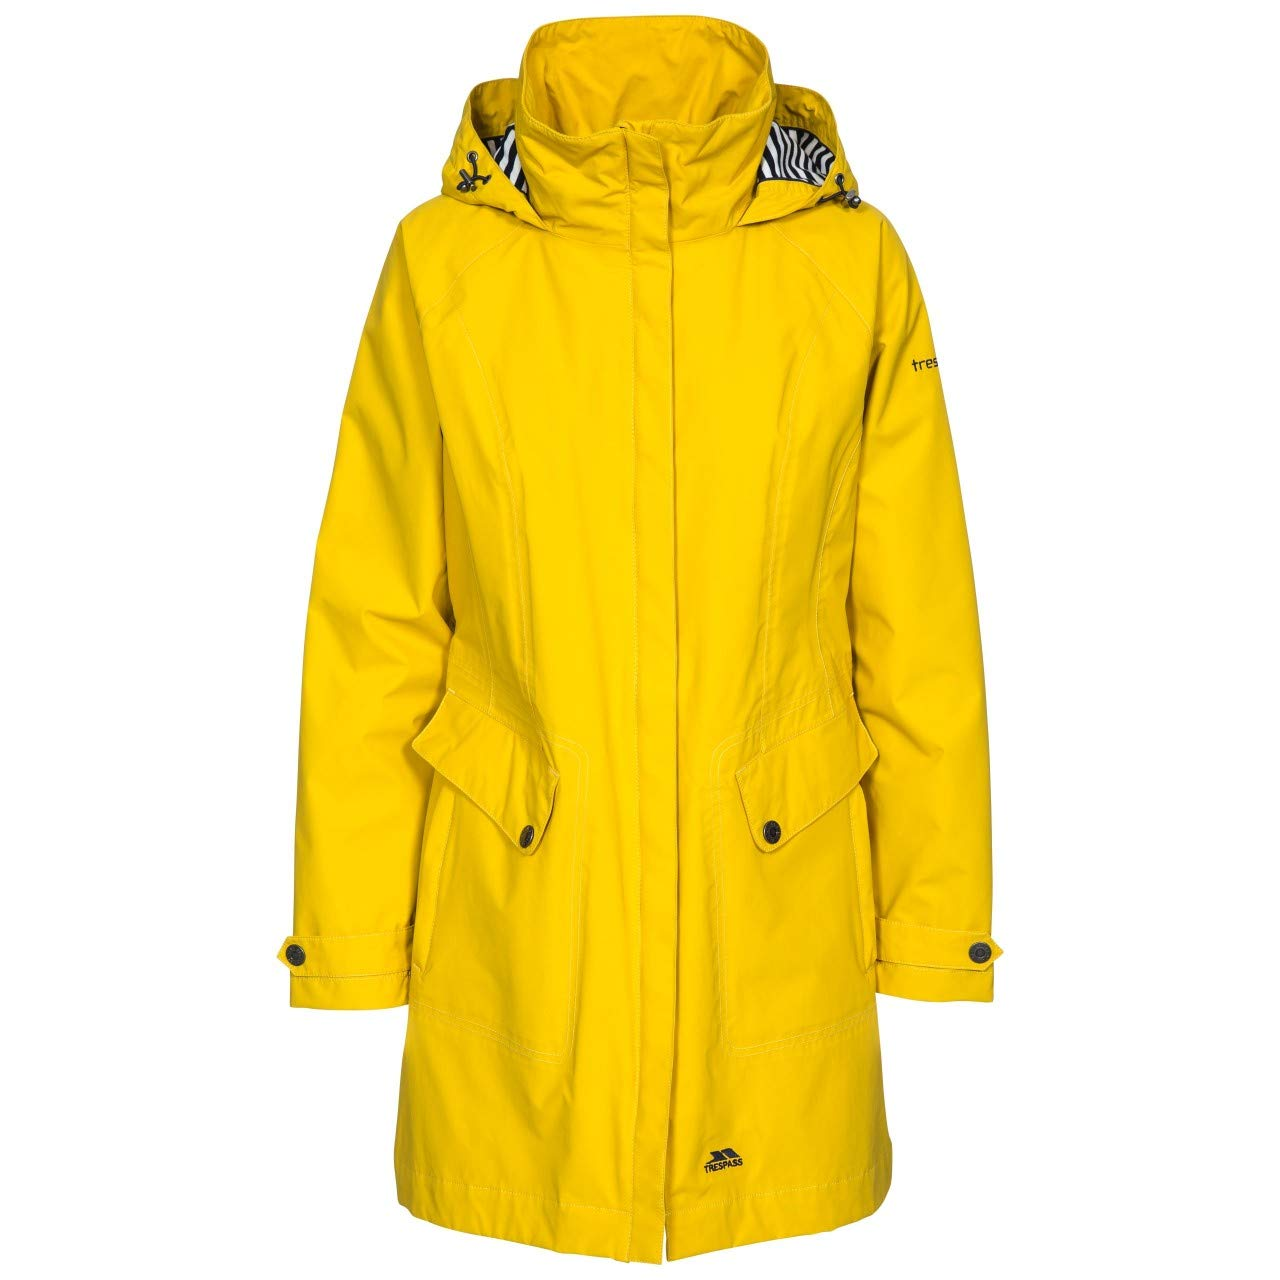 gold Trespass Womens Ladies Rainy Day Waterproof Jacket